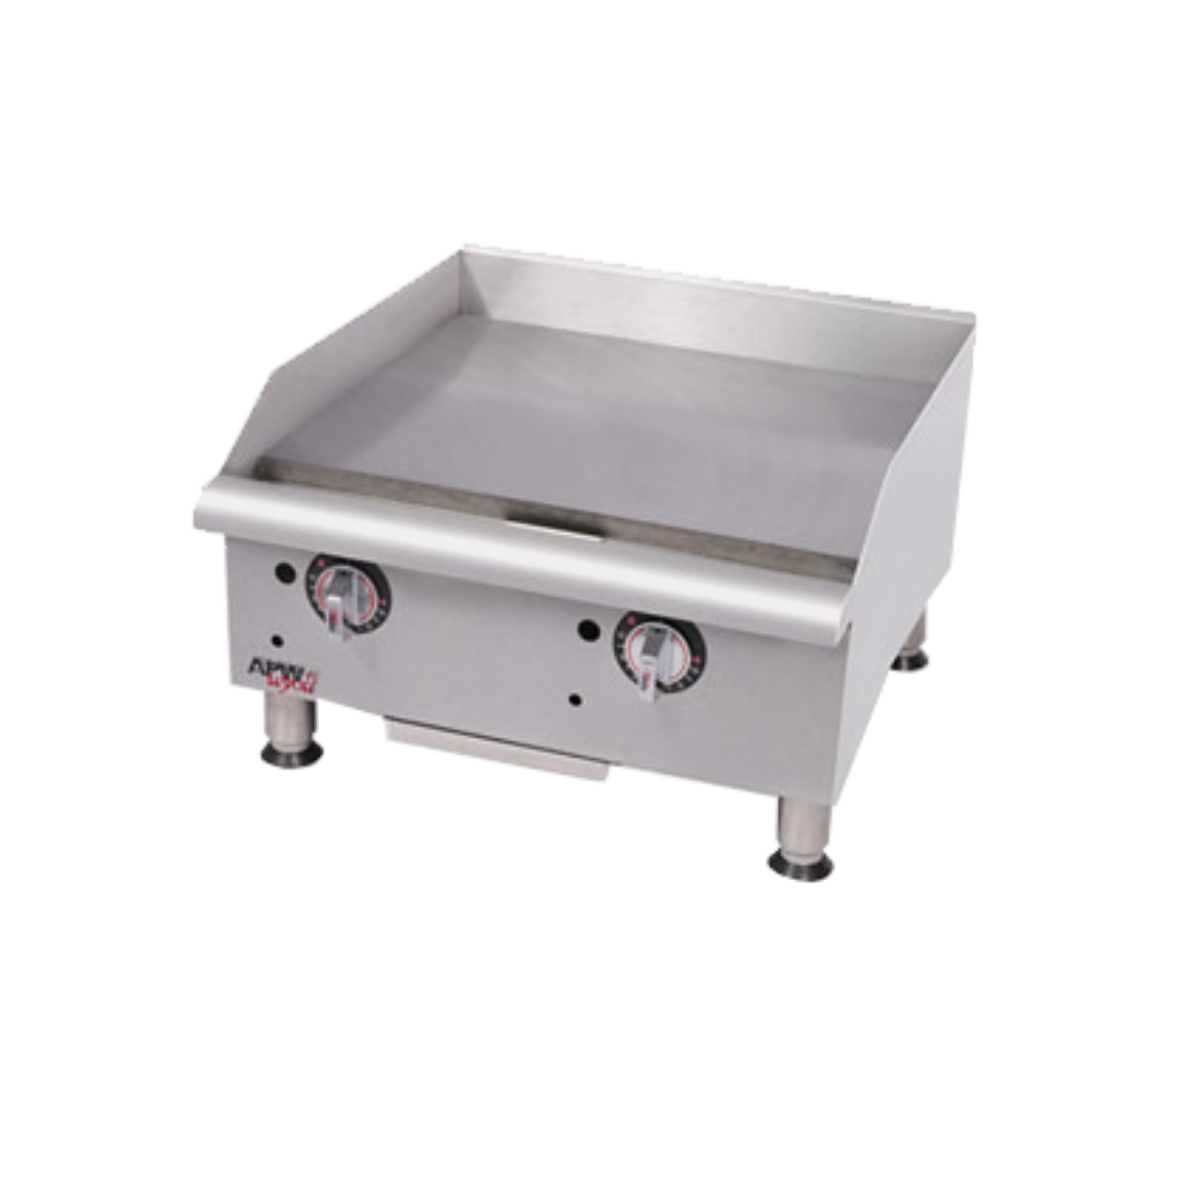 APW GGM-24IS Griddle, Gas w/Safety Pilot